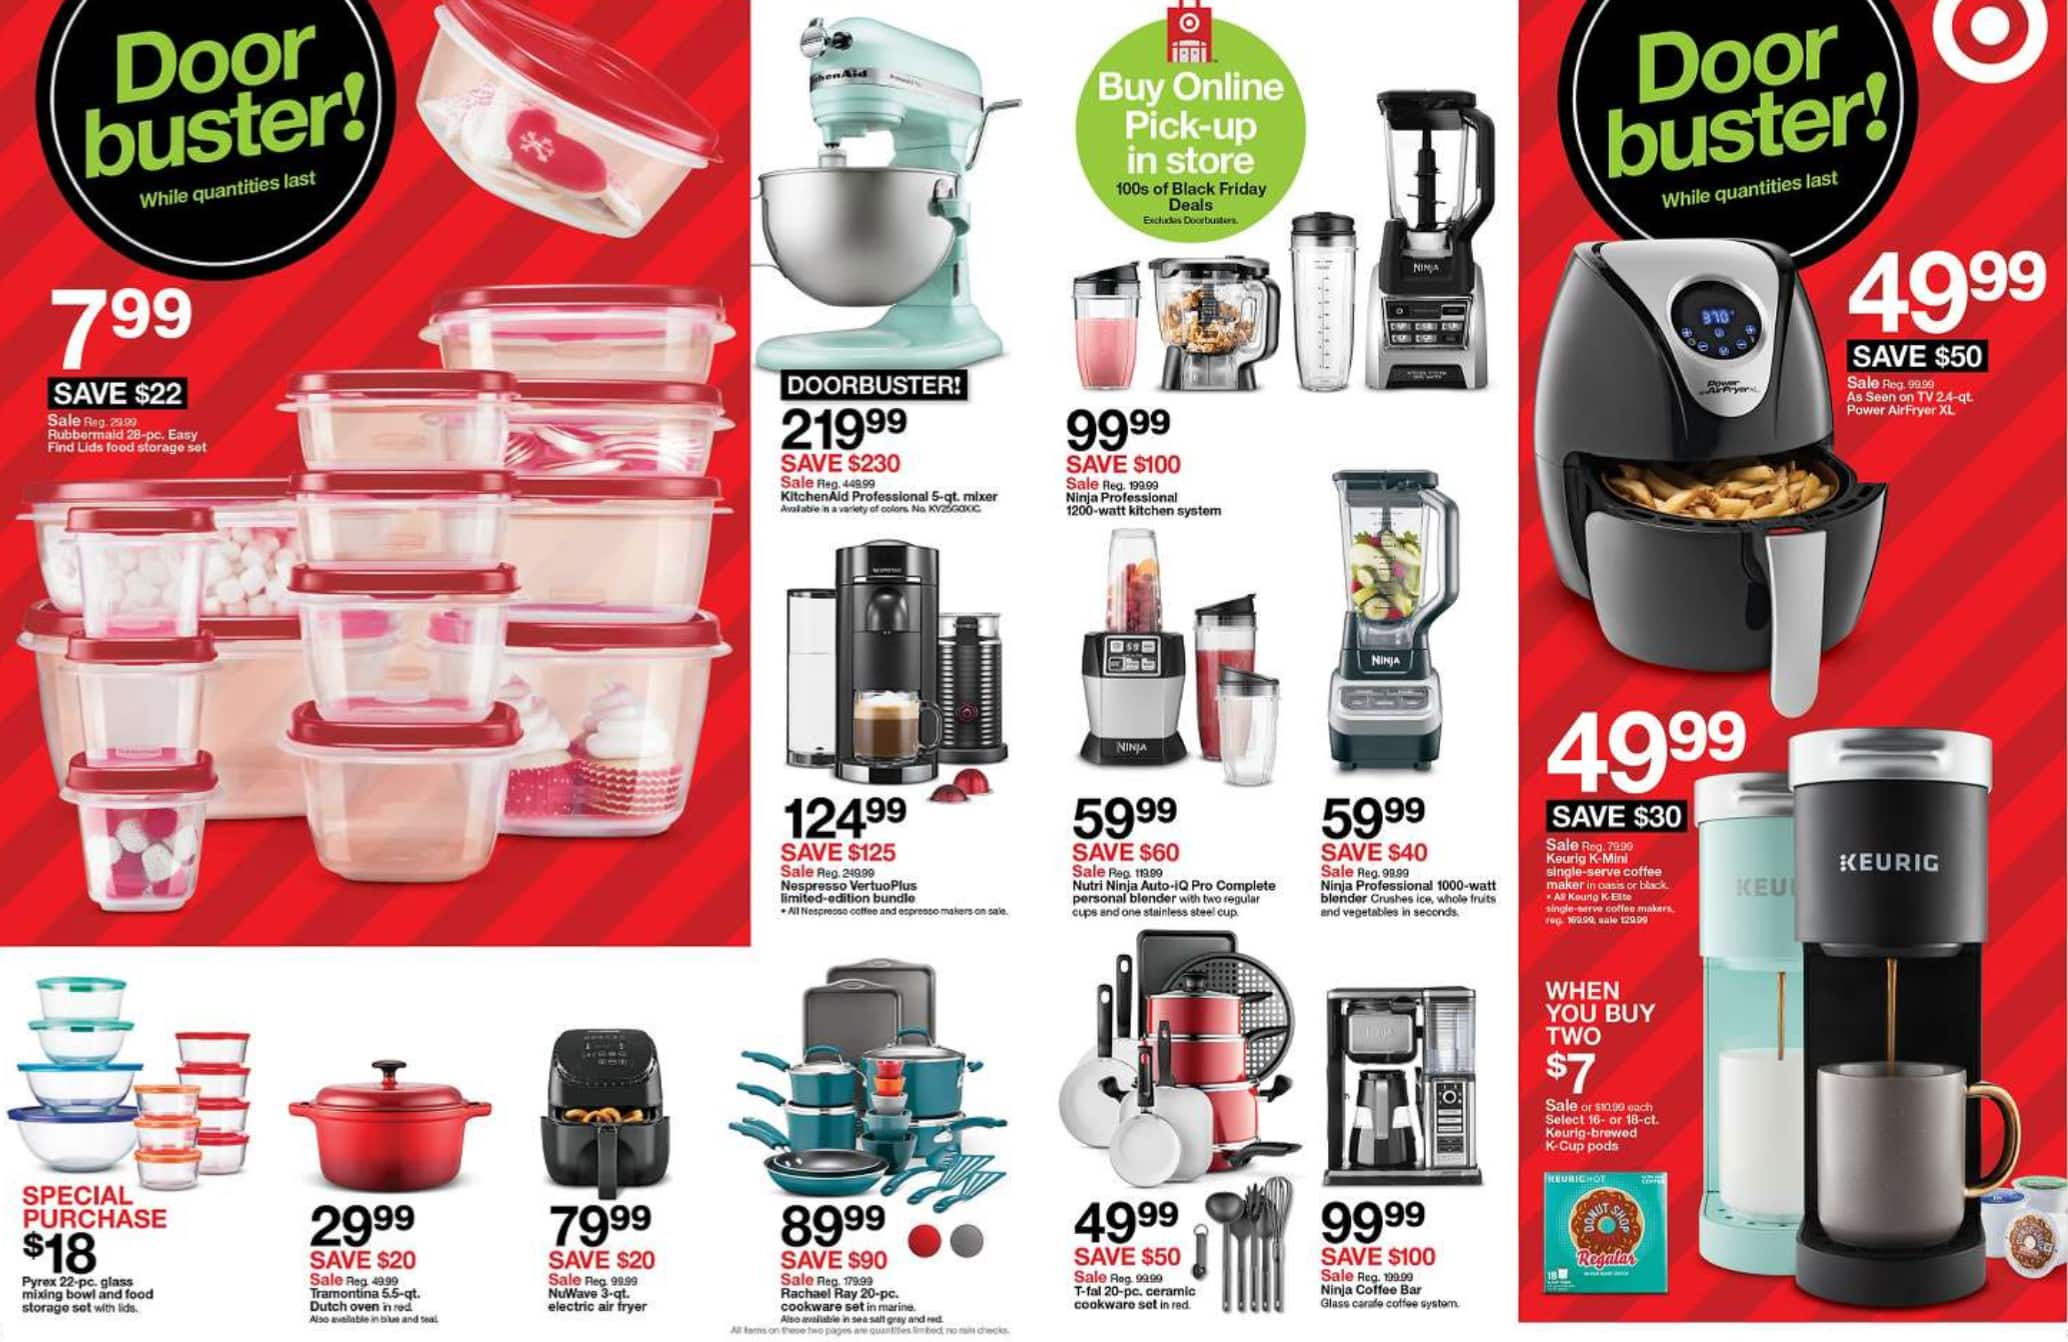 Black Friday Specials The Best Deals From The 2018 Target Black Friday Sale